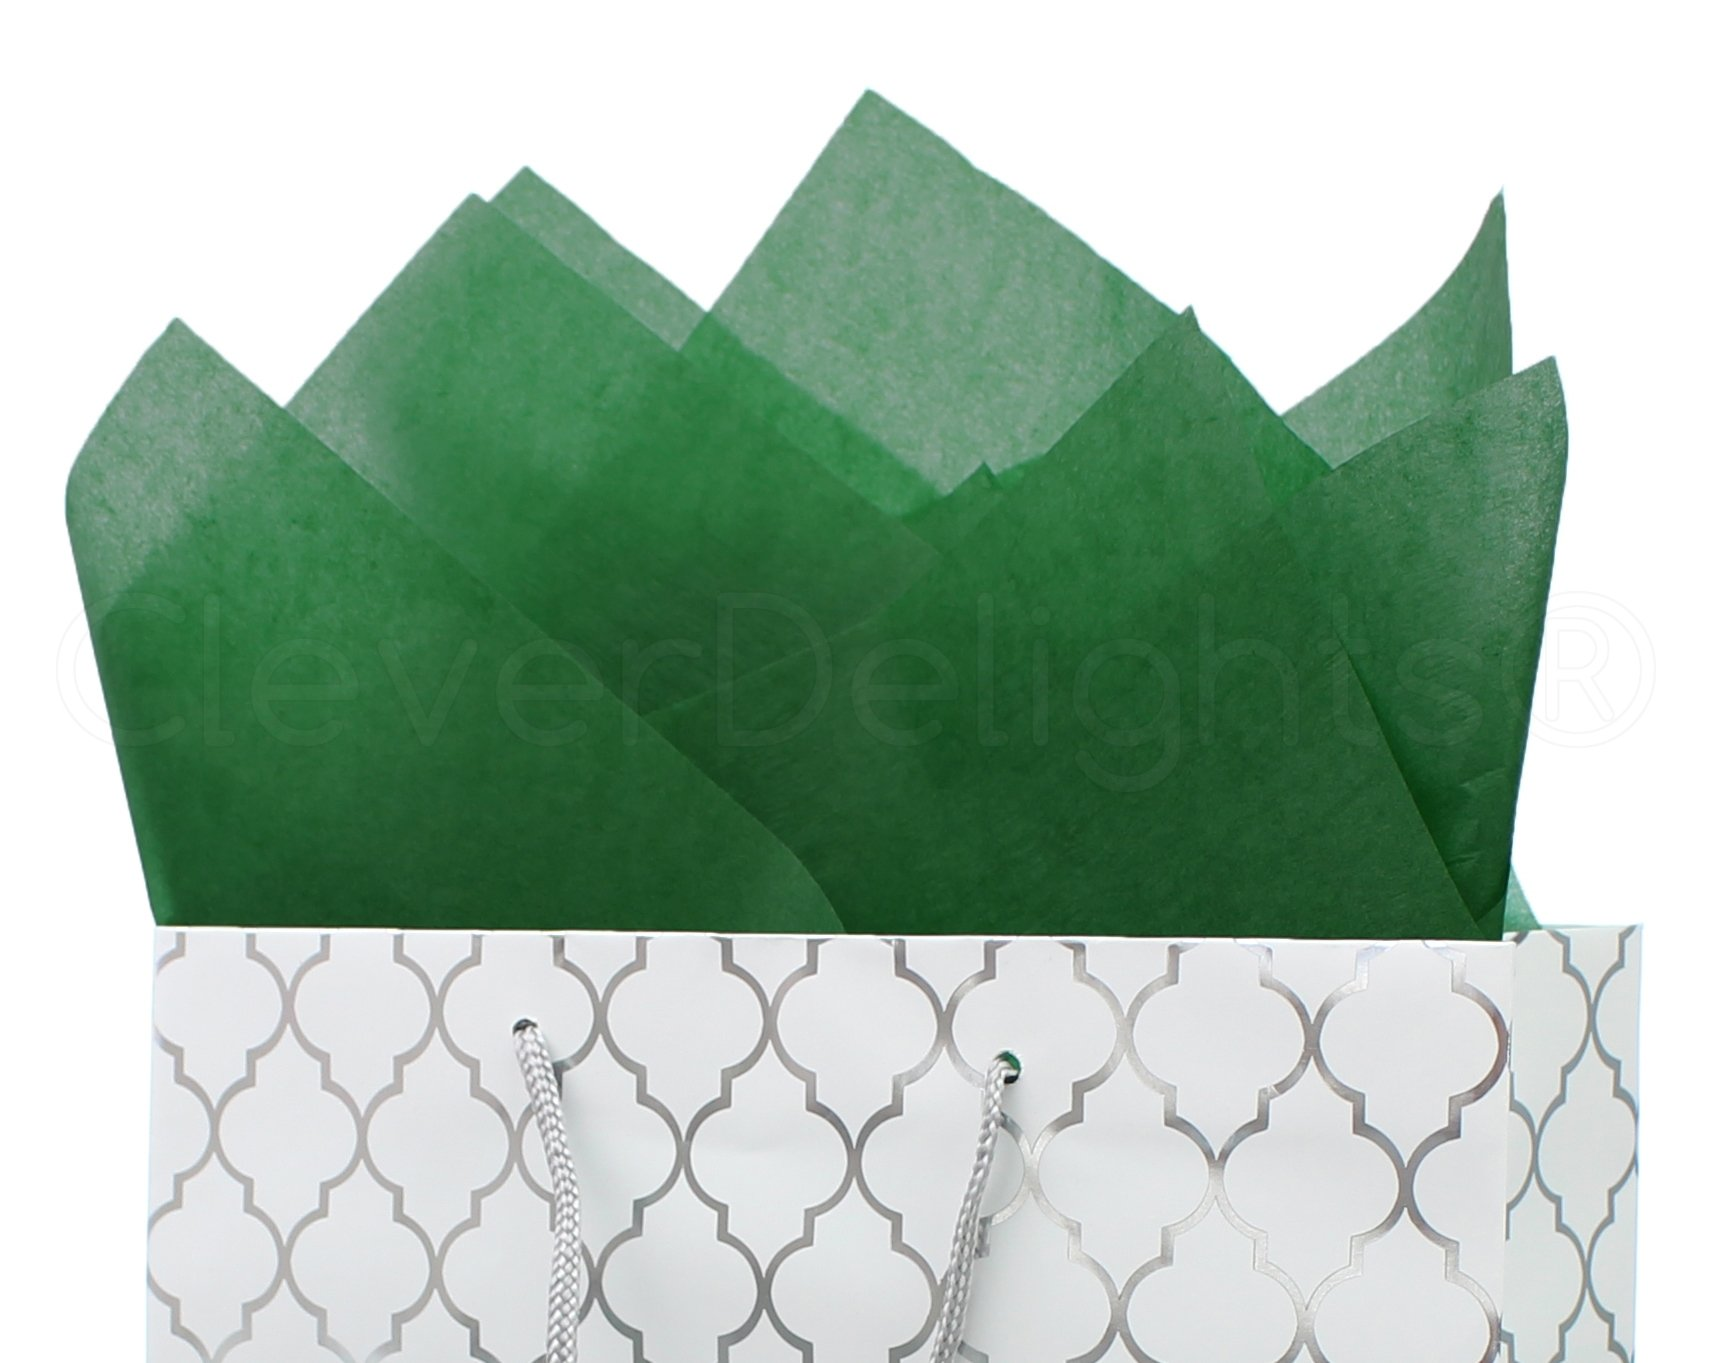 CleverDelights Green Premium Tissue Paper - 100 Sheets - 20'' x 30'' - Acid-Free Gift Paper by CleverDelights (Image #1)